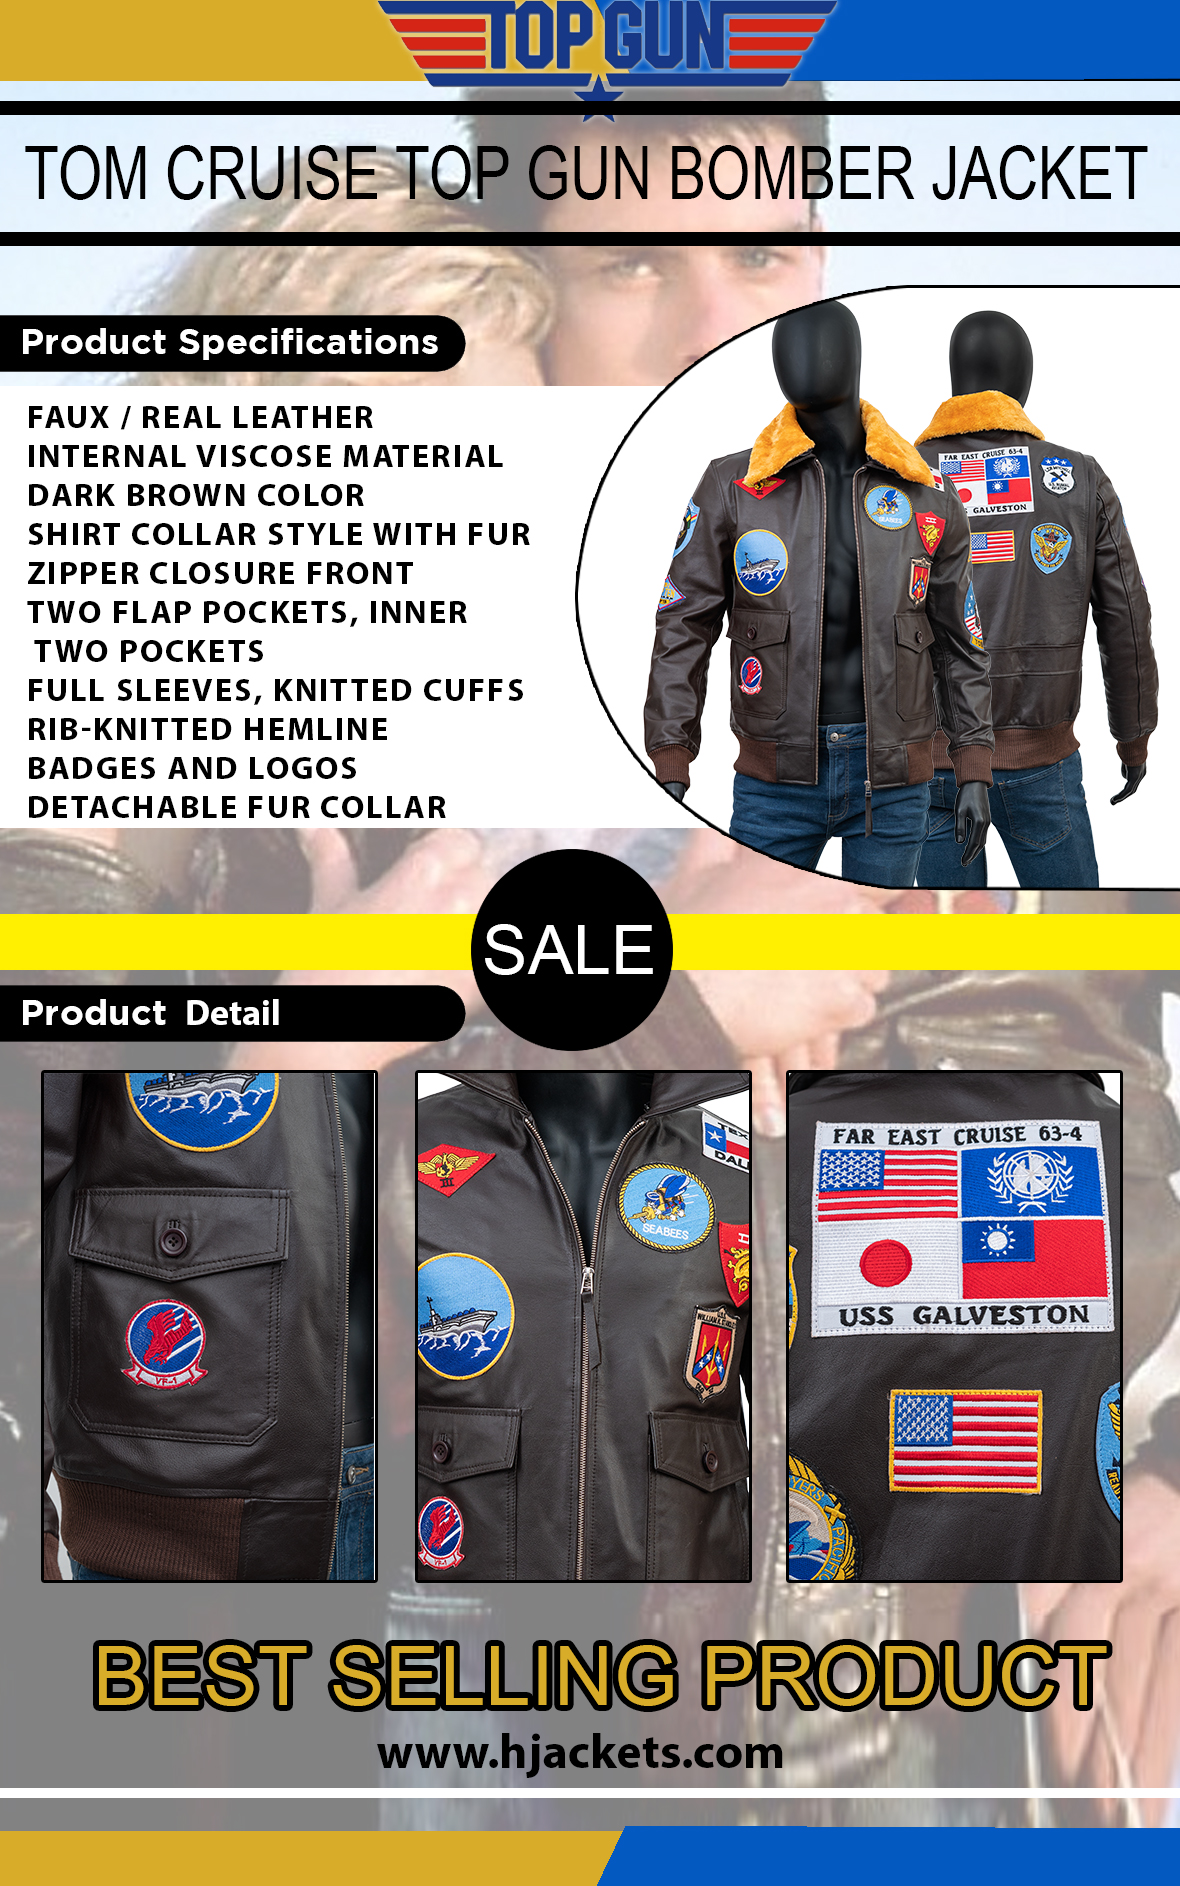 Tom Cruise Top Gun Bomber Jacket Infographic